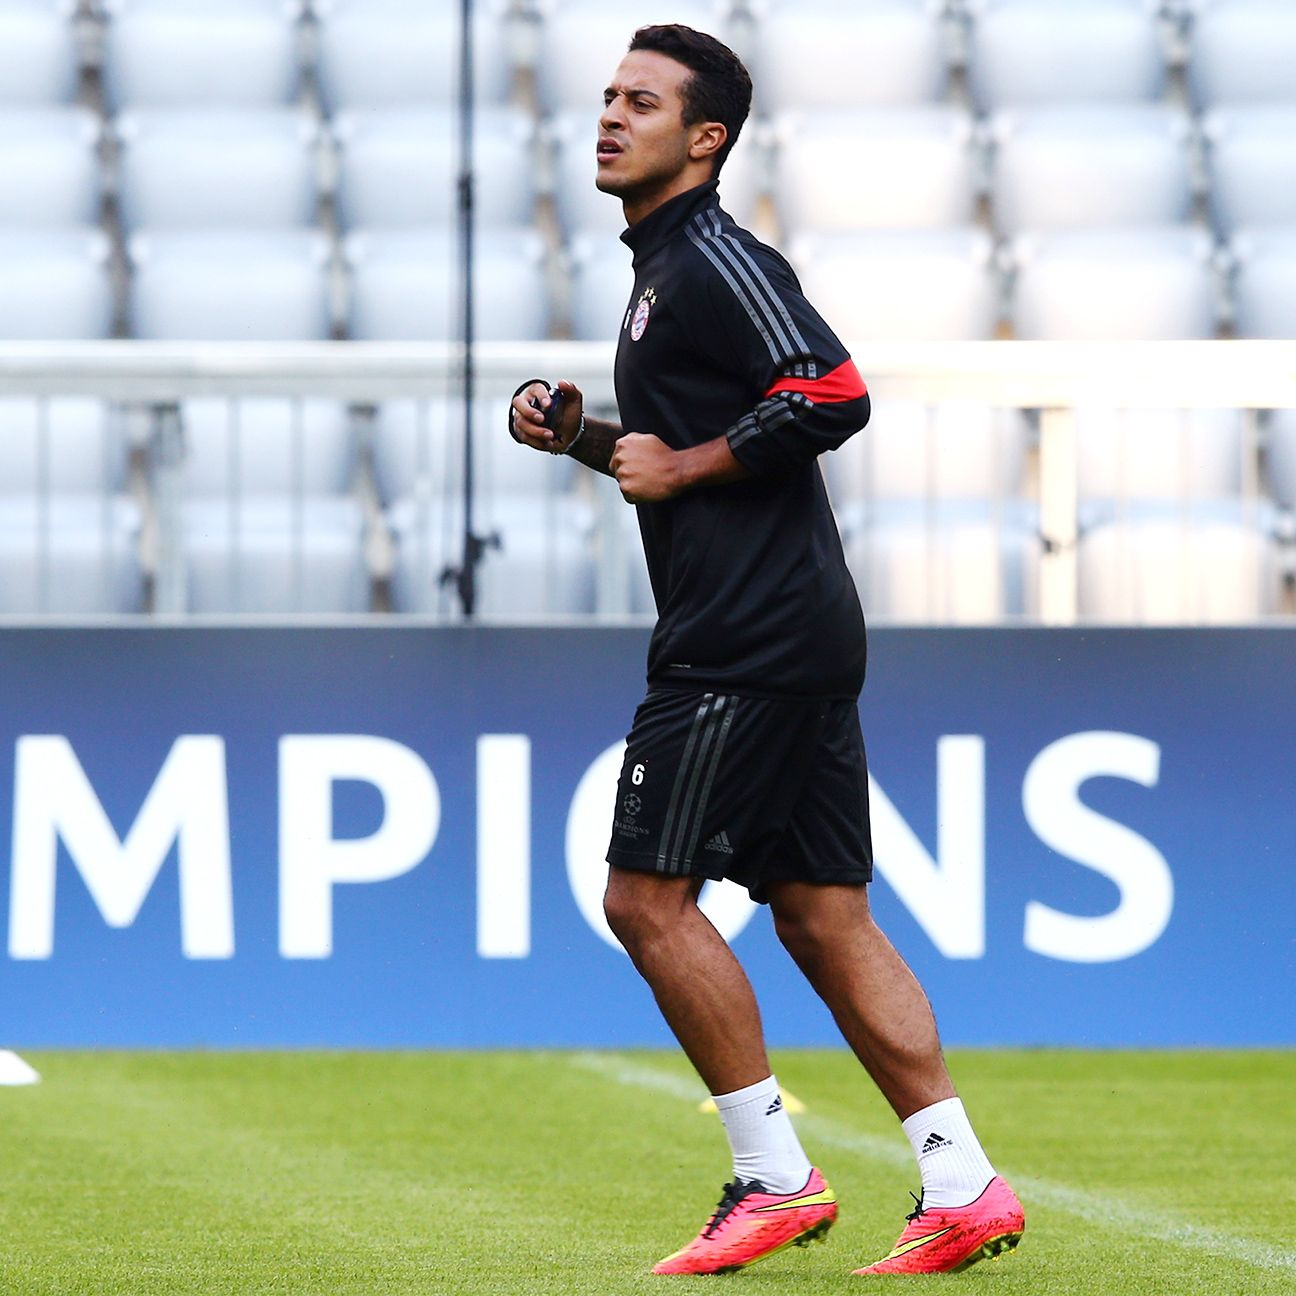 Thiago has featured in just 25 matches for Bayern since joining the German side in July 2013.